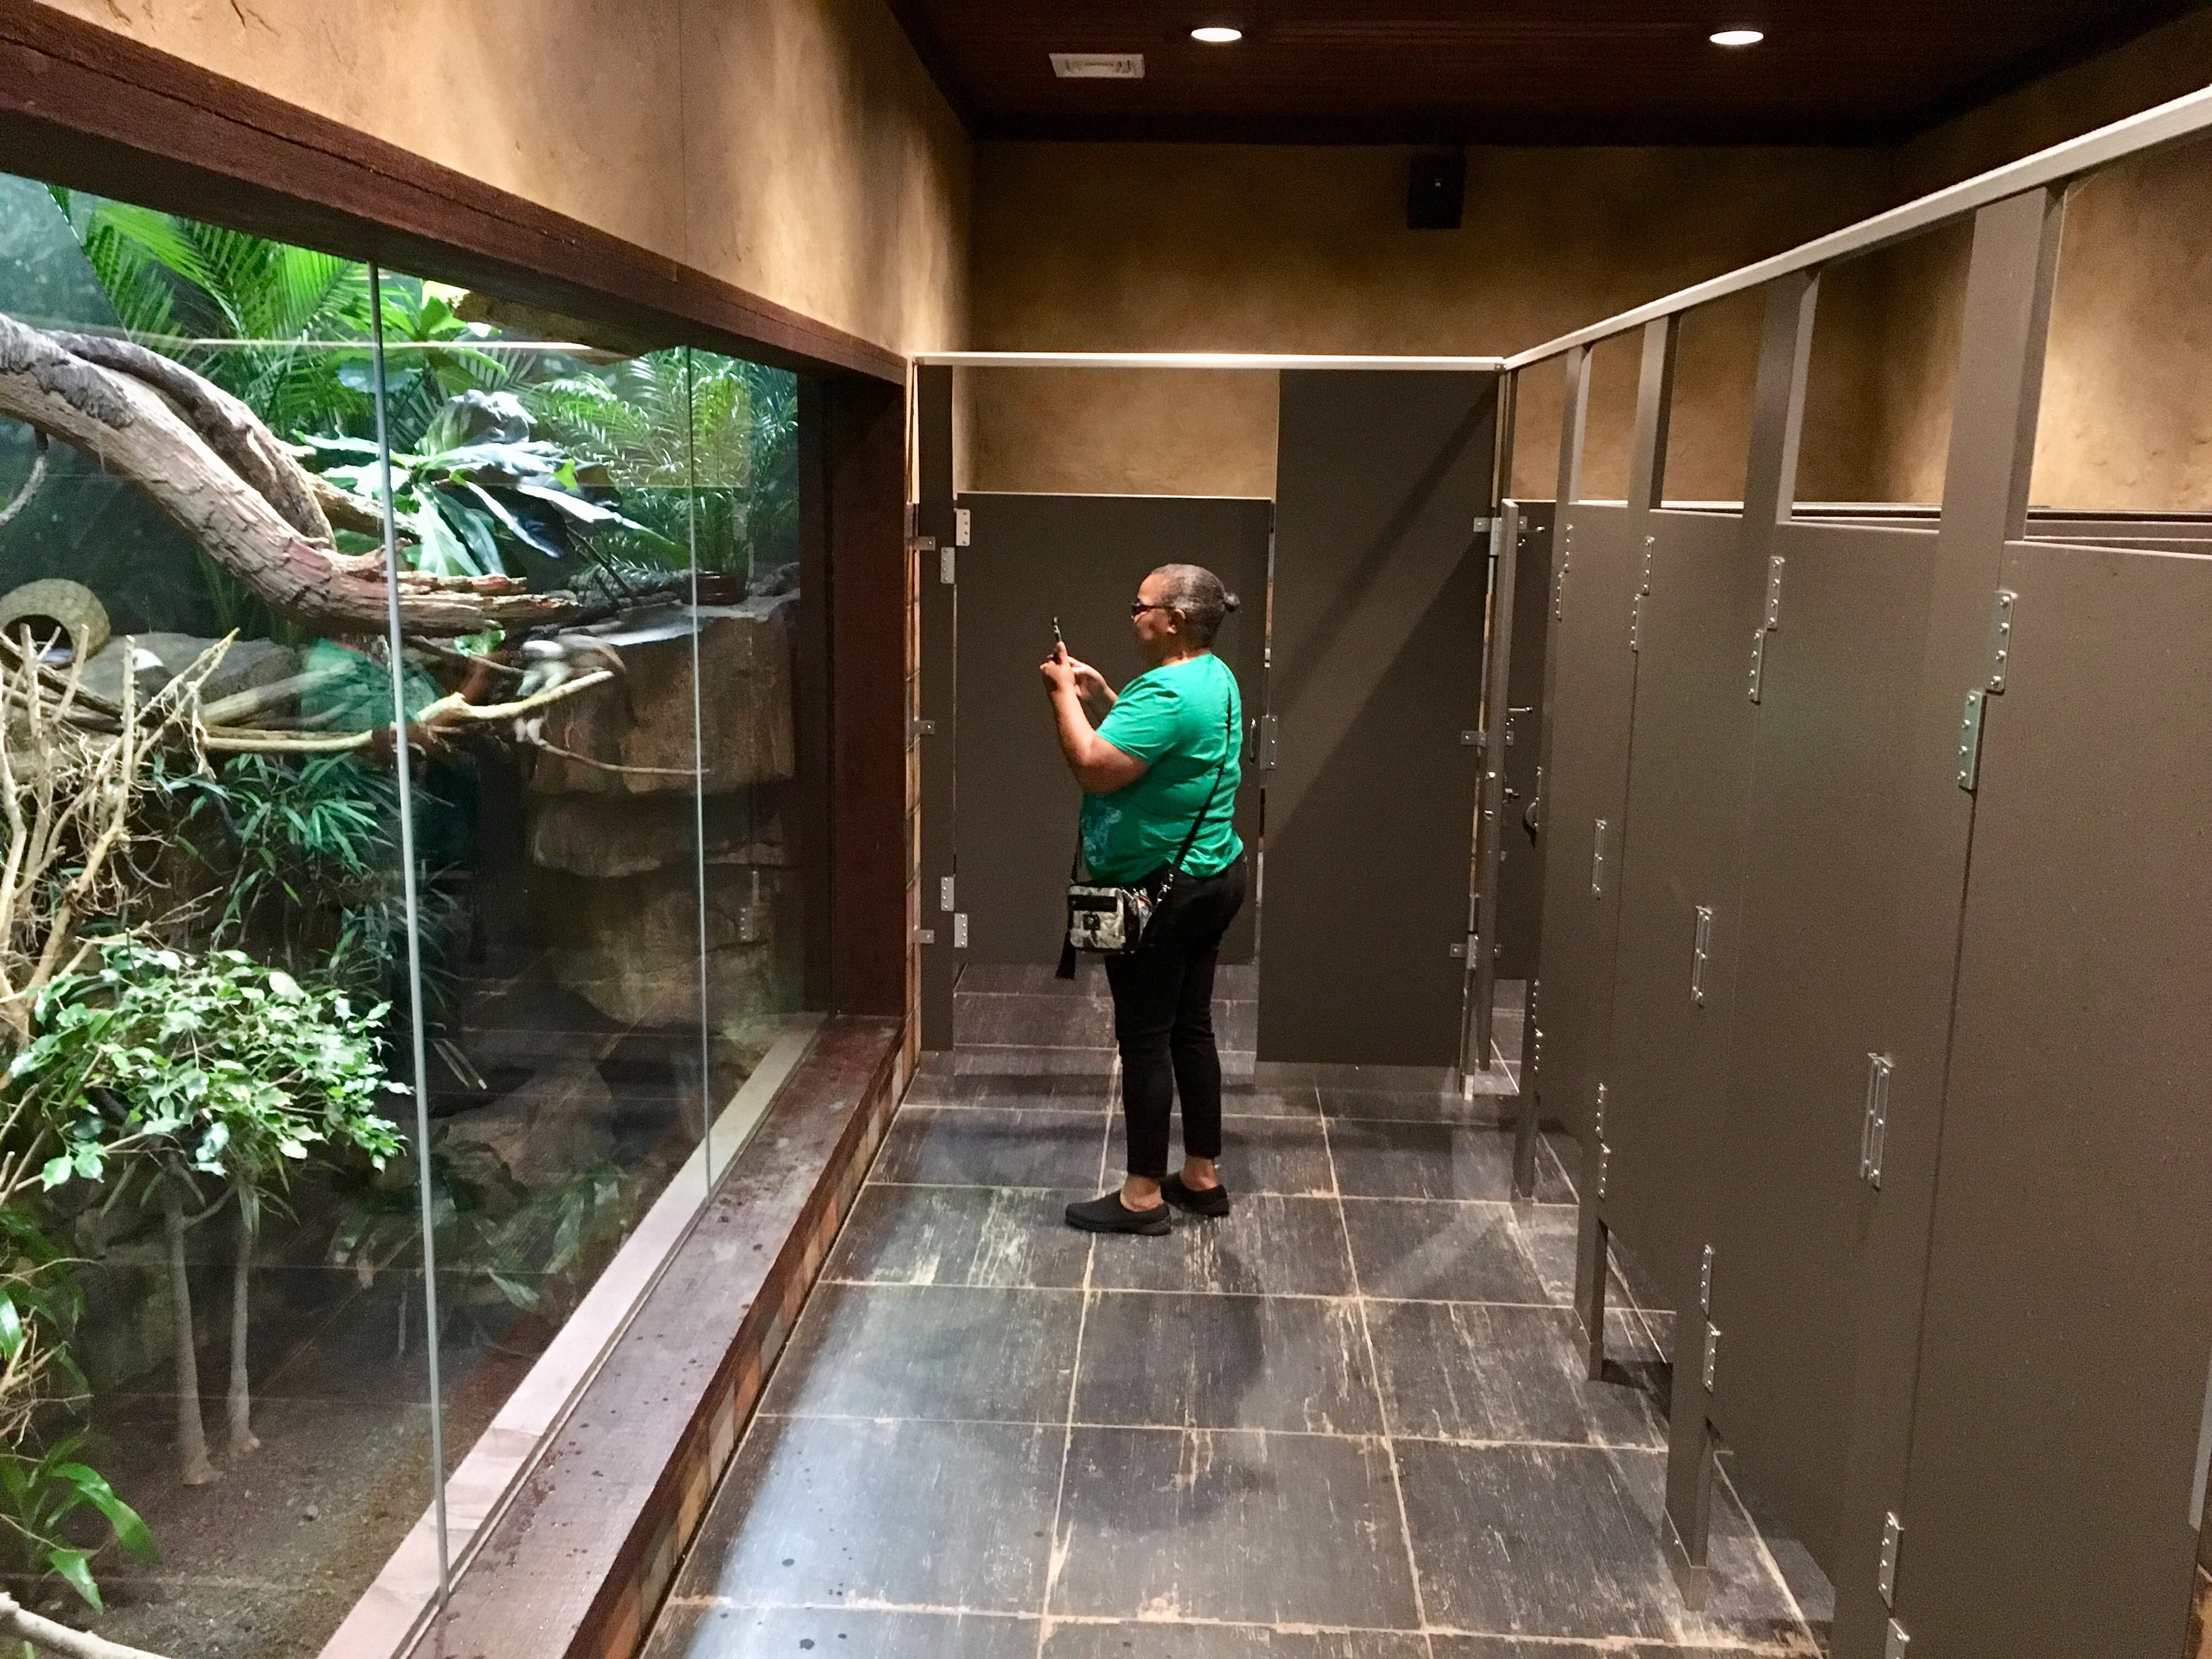 Visitor Lucille Covington takes pictures of the monkeys in an exhibit inside a women's restroom at Nashville Zoo at Grassmere